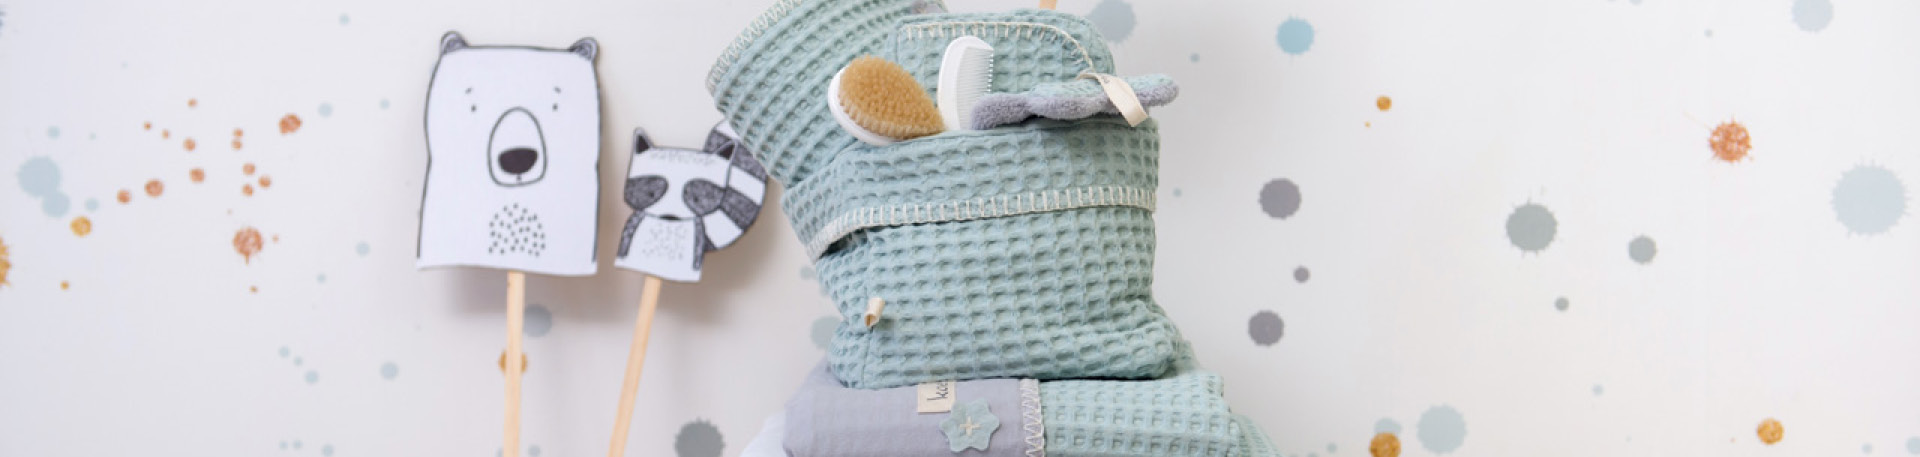 Maternity gifts